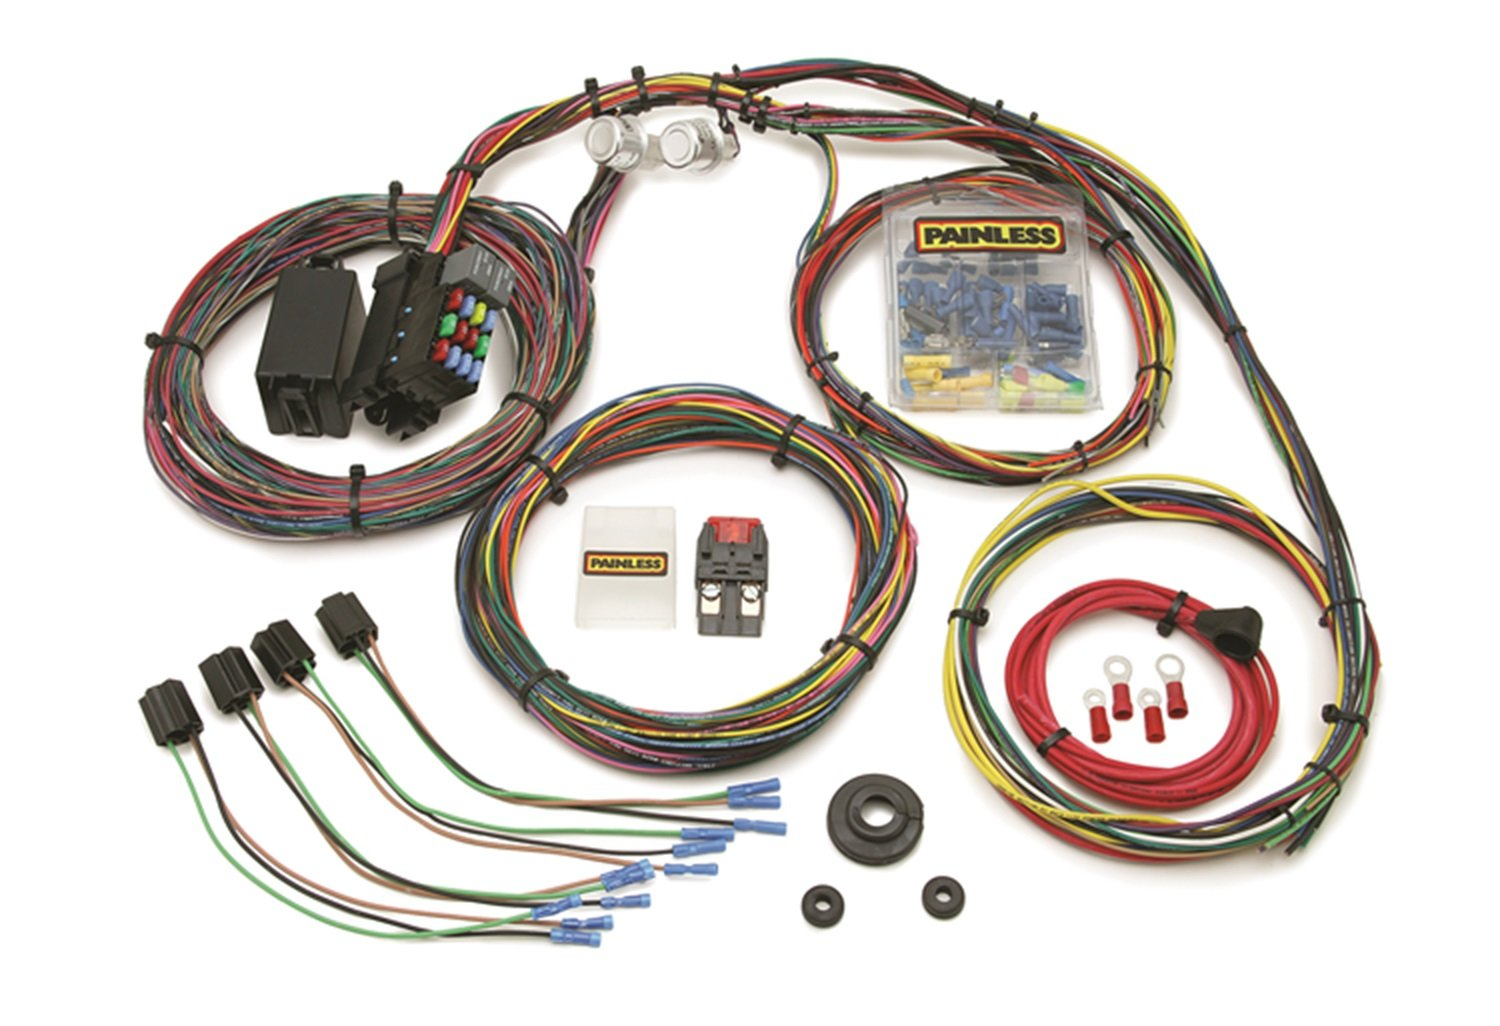 71gWOH5D5zL._SL1500_ amazon com painless 10127 automotive painless wiring harness rebate at creativeand.co